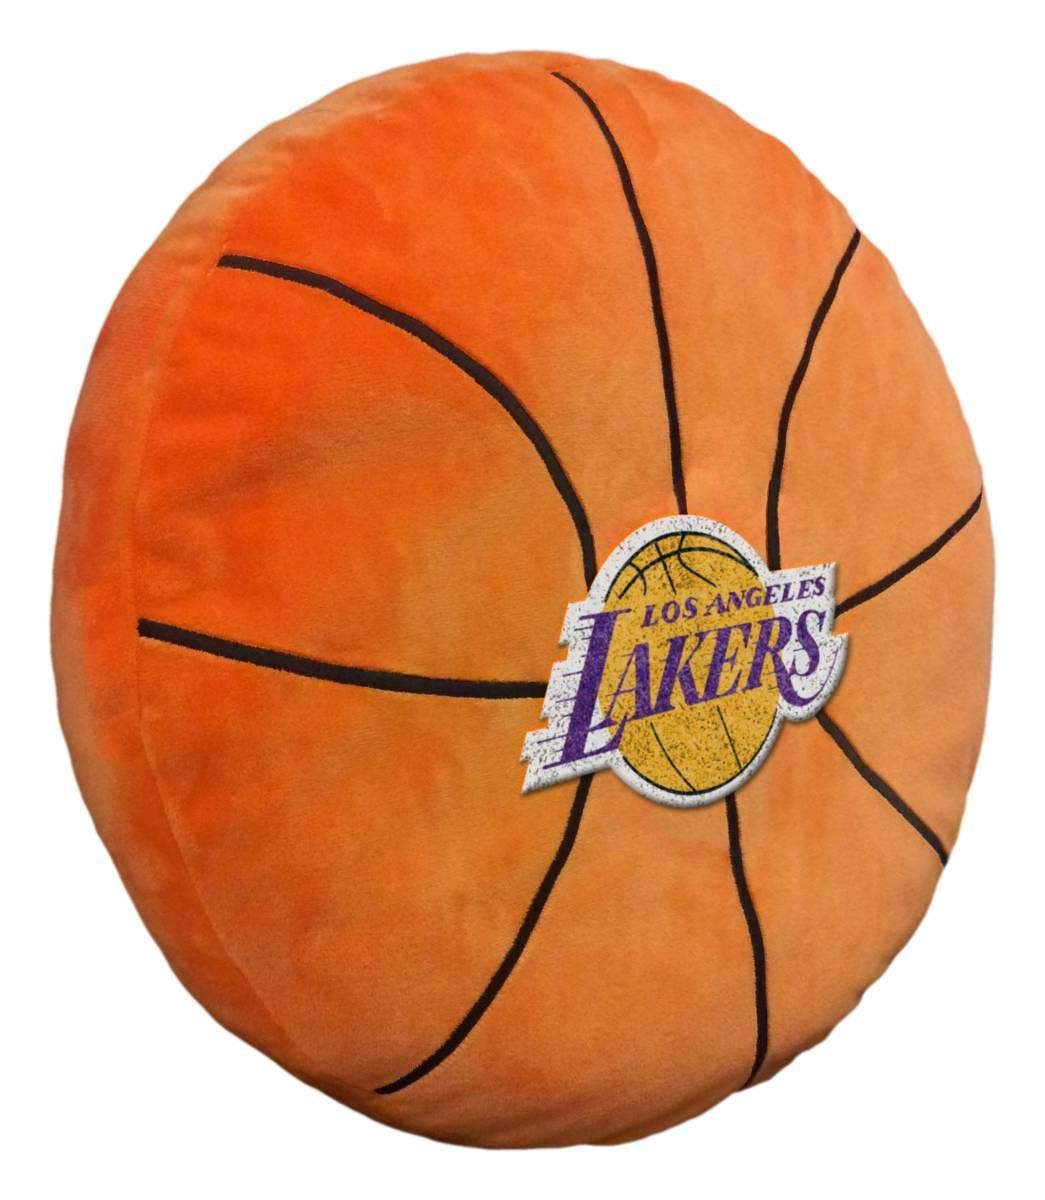 Officially Licensed NBA Los Angeles Lakers ''3D'' Basketball Shaped Pillow, Orange, 15'' x 15'' x 2'' by The Northwest Company